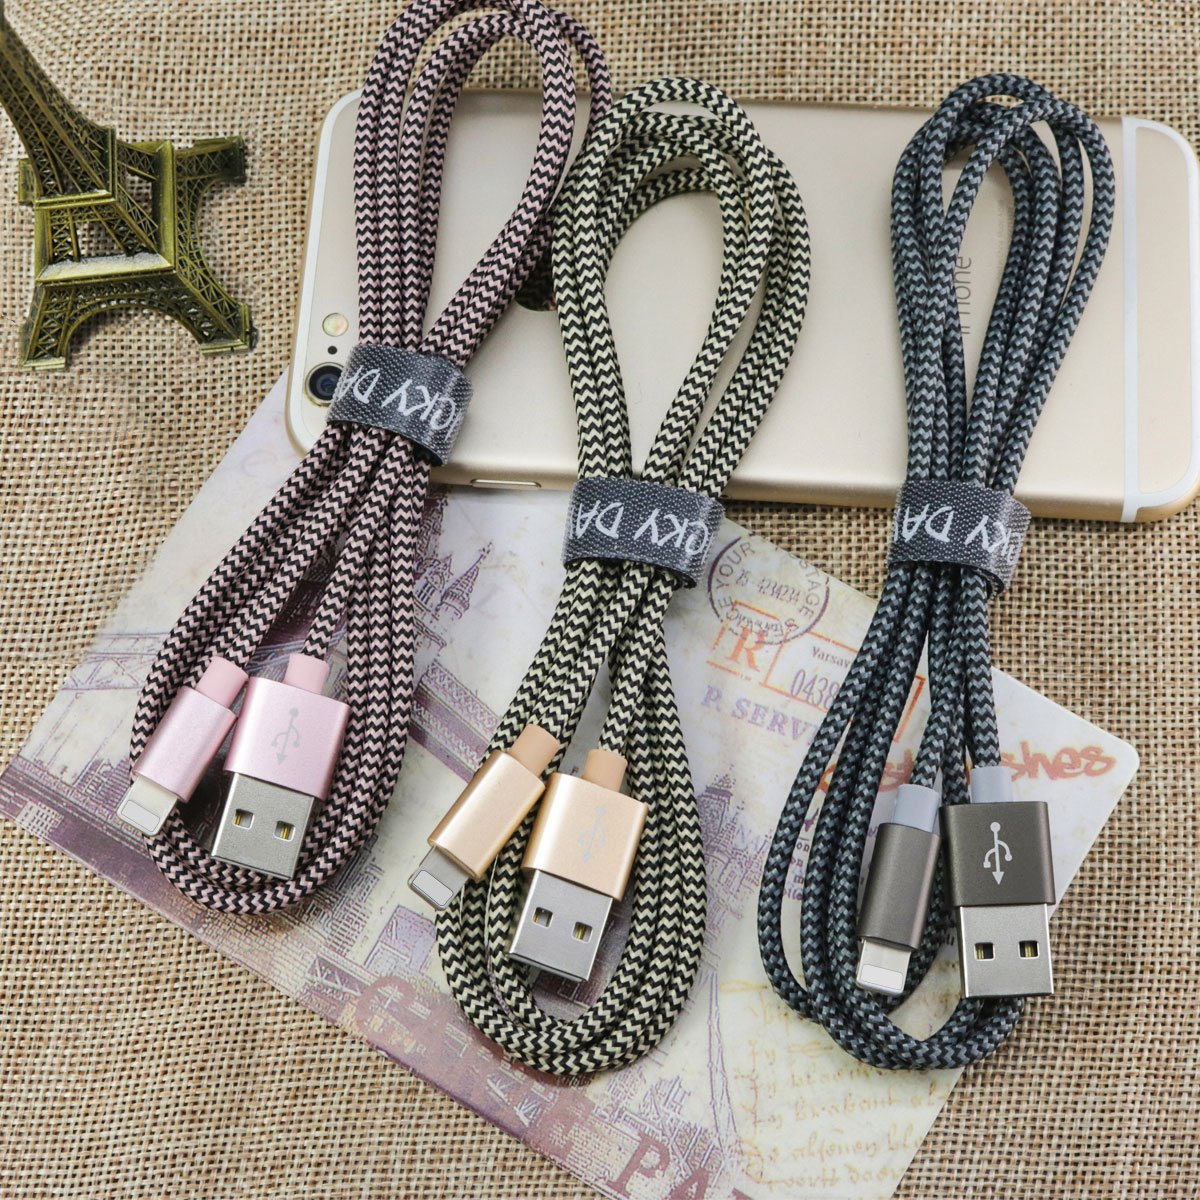 Phone Cable – Becaso 3 Packs 5ft/1.5m Nylon Braided Charging Cable Compatible with Phone Xr/X/8/8 Plus/7/7Plus, Phone 6s Plus/6s/6 Plus/6, Phone 5/5s/5c, Pad, Pod and More (Gold, Pink, Grey)